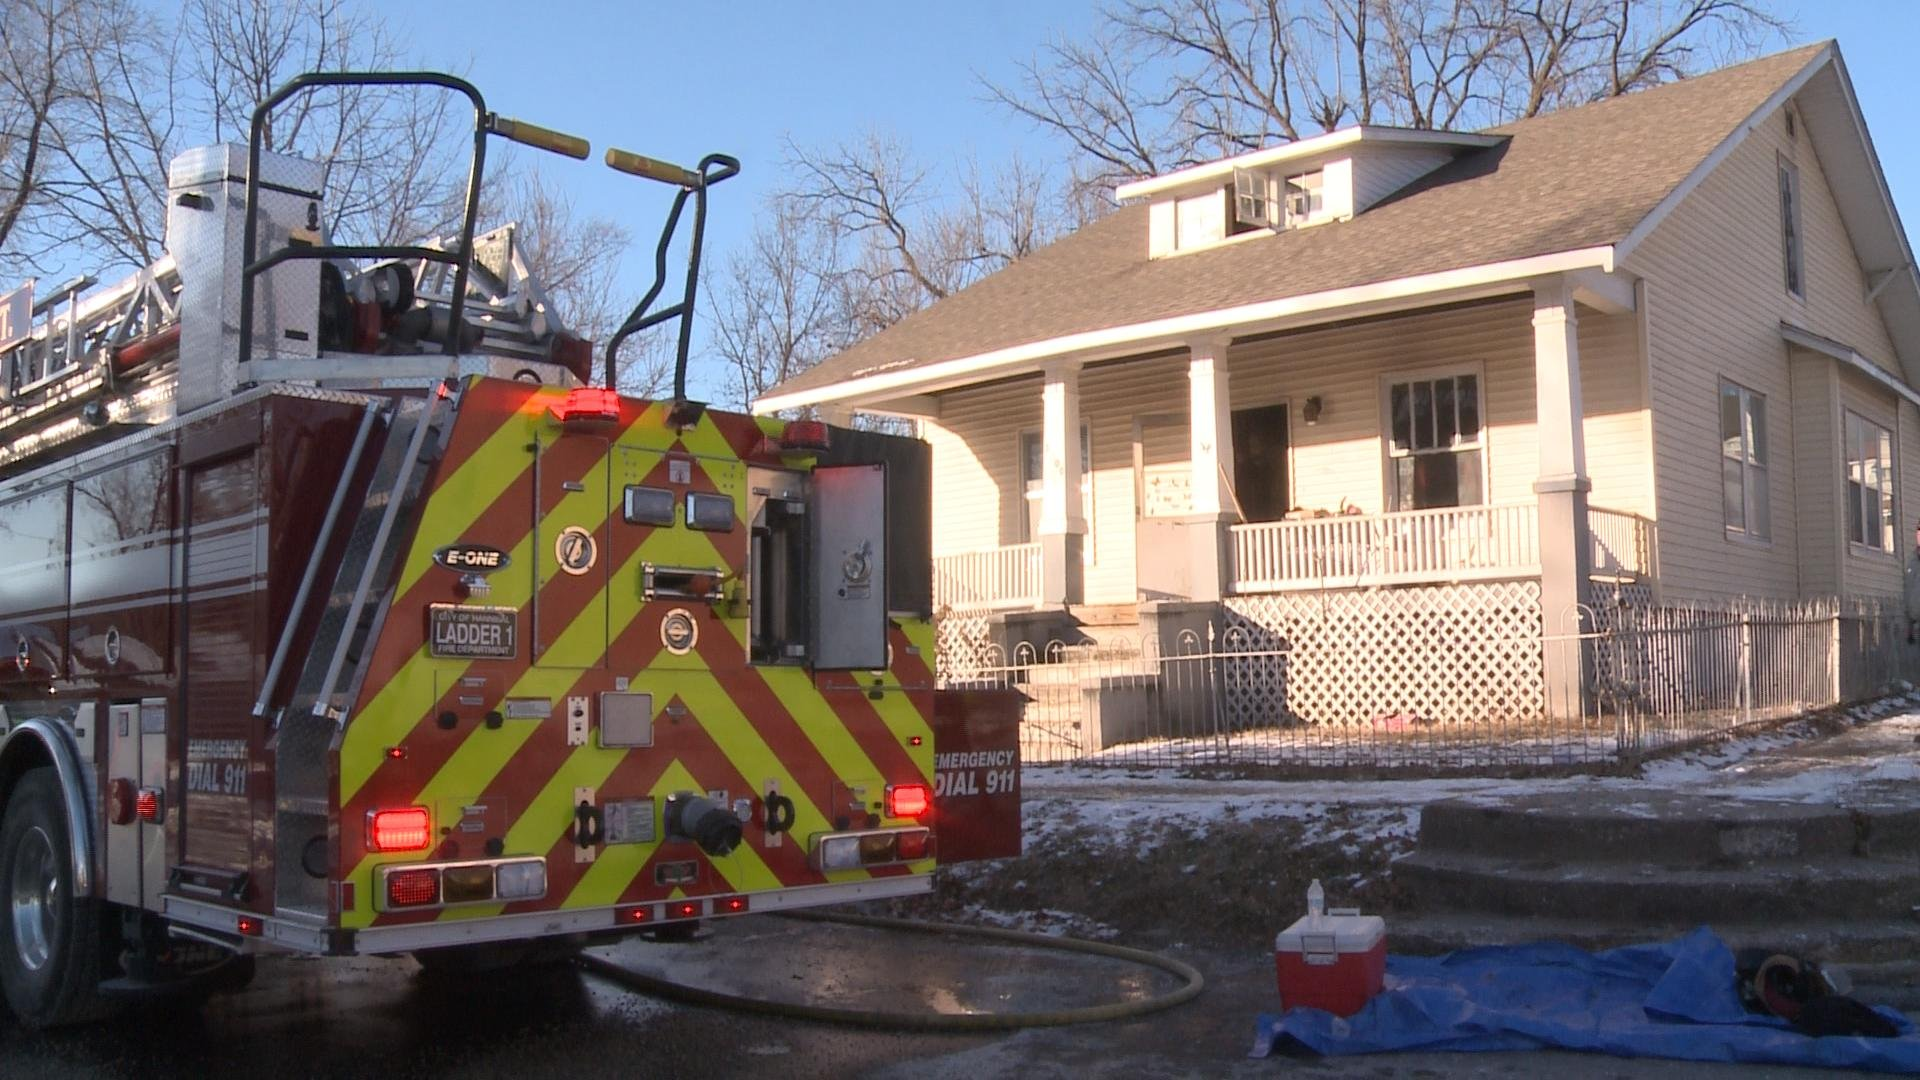 Hannibal firefighters dealt with a frozen hydrant while battling a house fire Monday in the 1900 block of Hope Street.